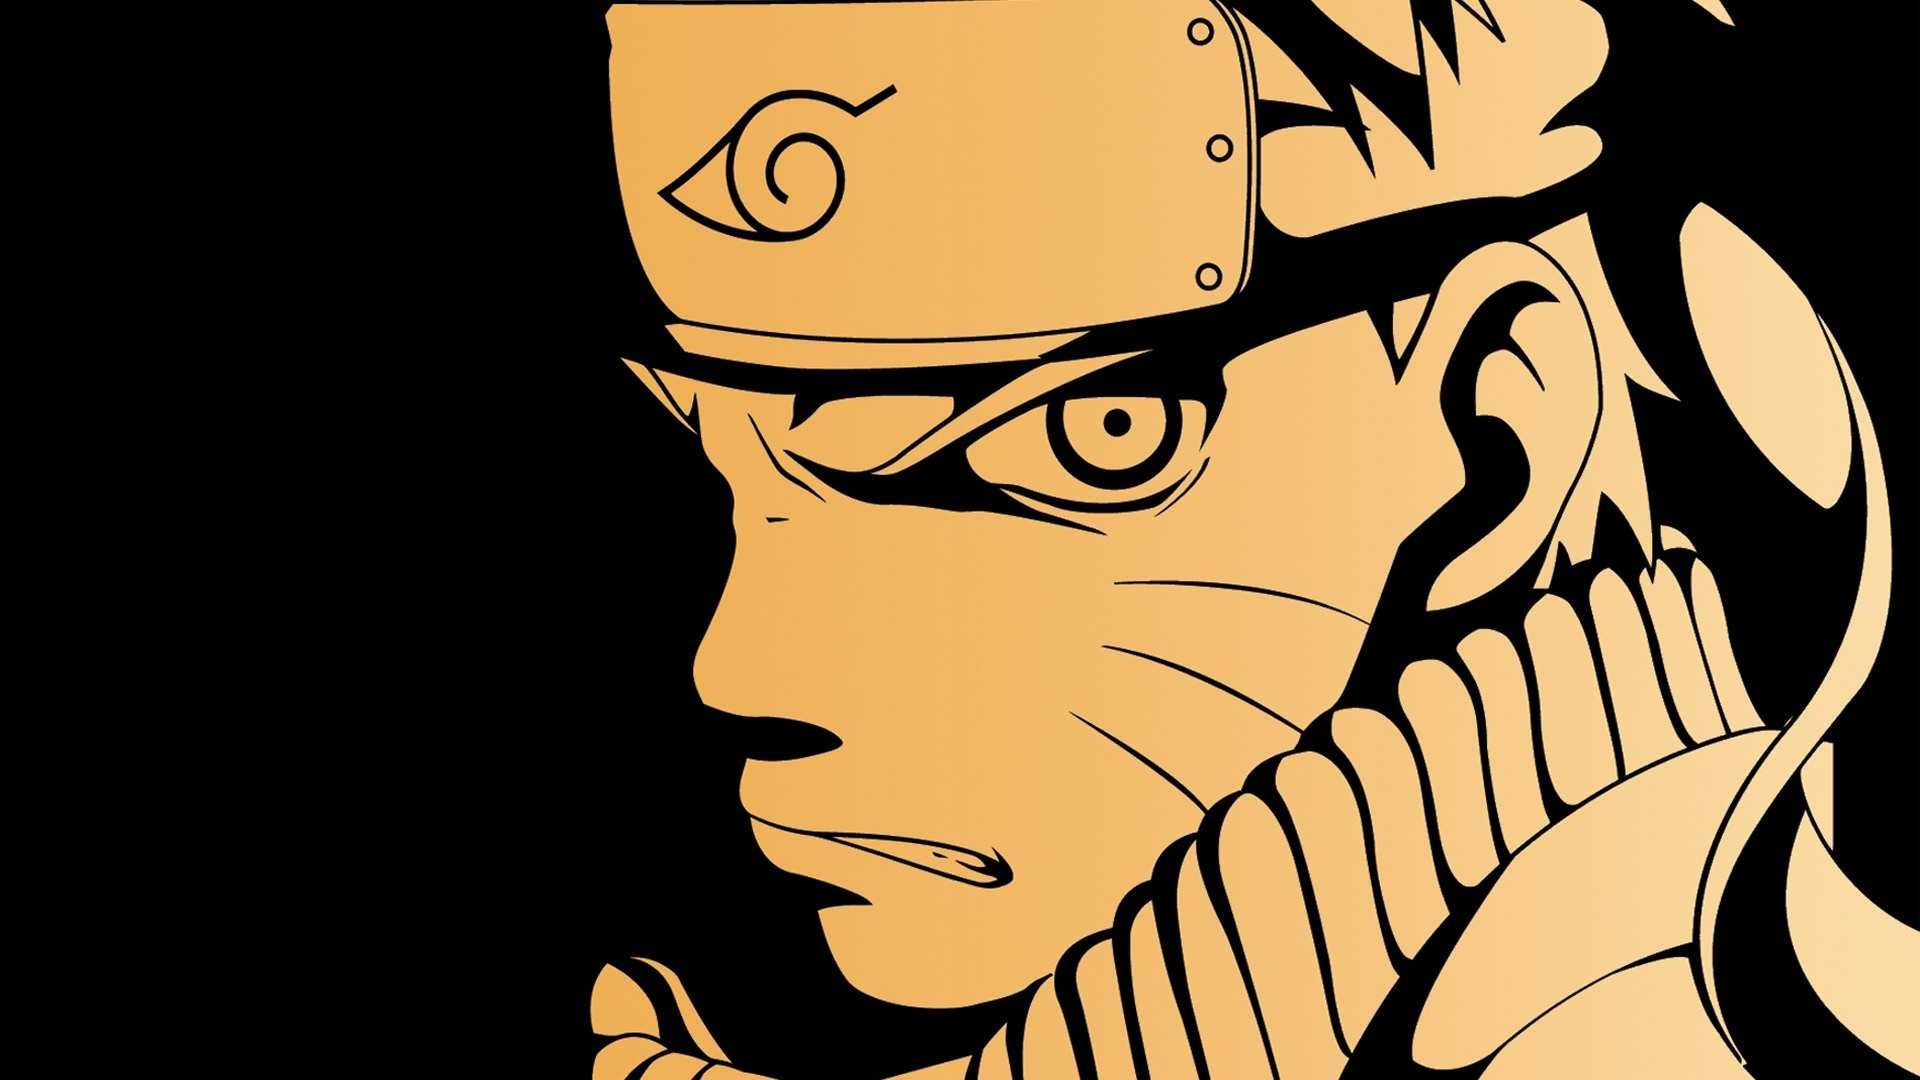 Naruto wallpapers hd 2018 63 images 1920x1080 1920x1080 naruto shippuden wallpapers hd voltagebd Images